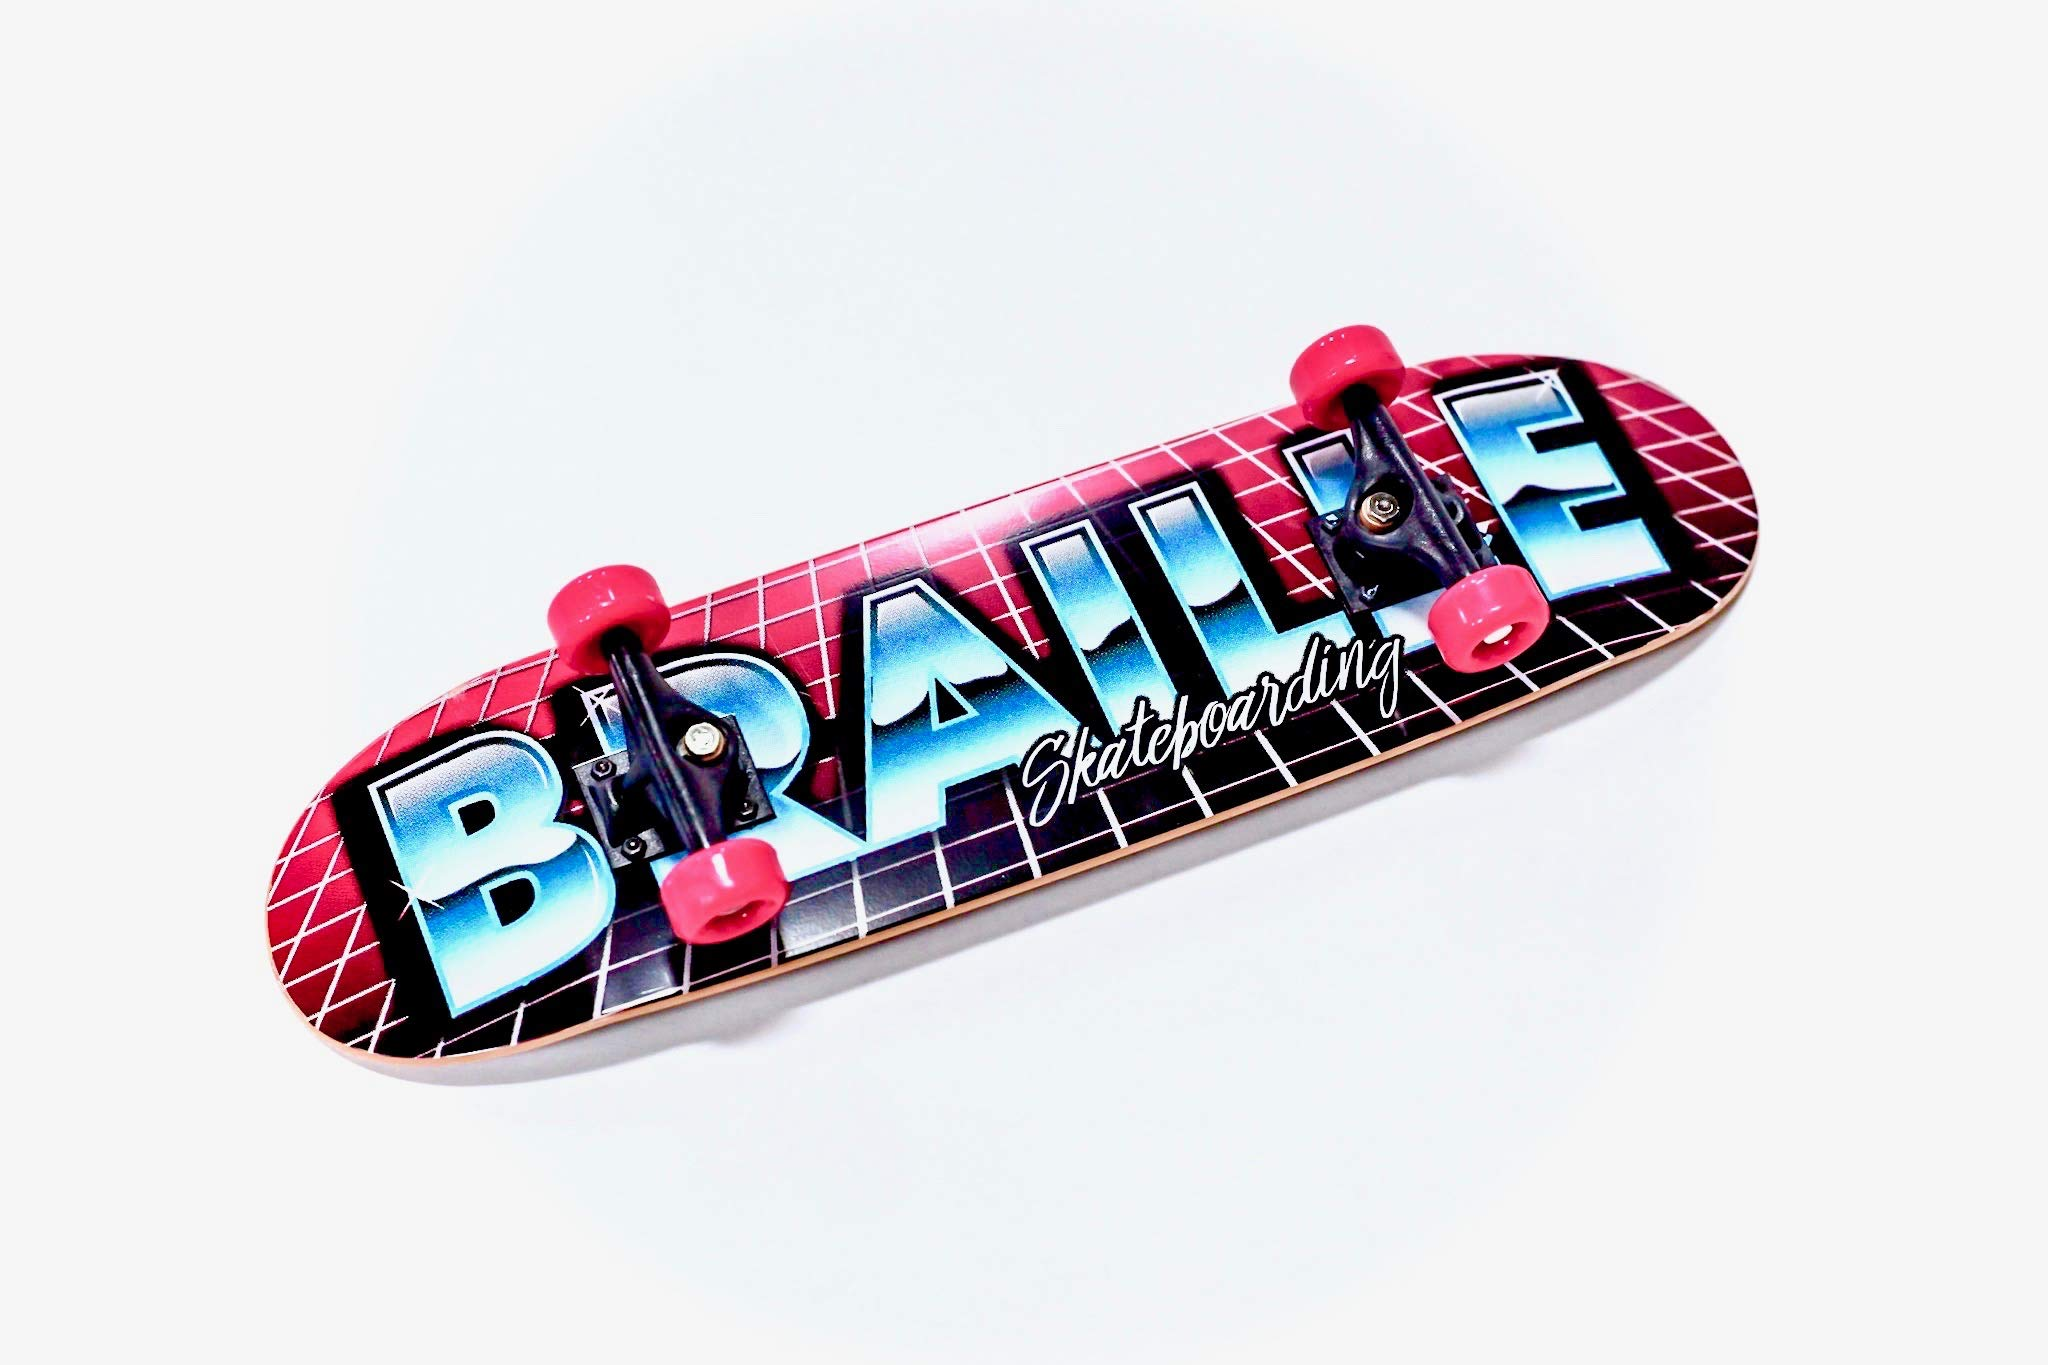 Braille Skateboarding Aaron Kyro 80's 11inch Professional Hand Board. Toy Skateboard Comes with Wheels, Trucks, Hardware and Tools. Real Griptape. by Braille Skateboarding (Image #4)